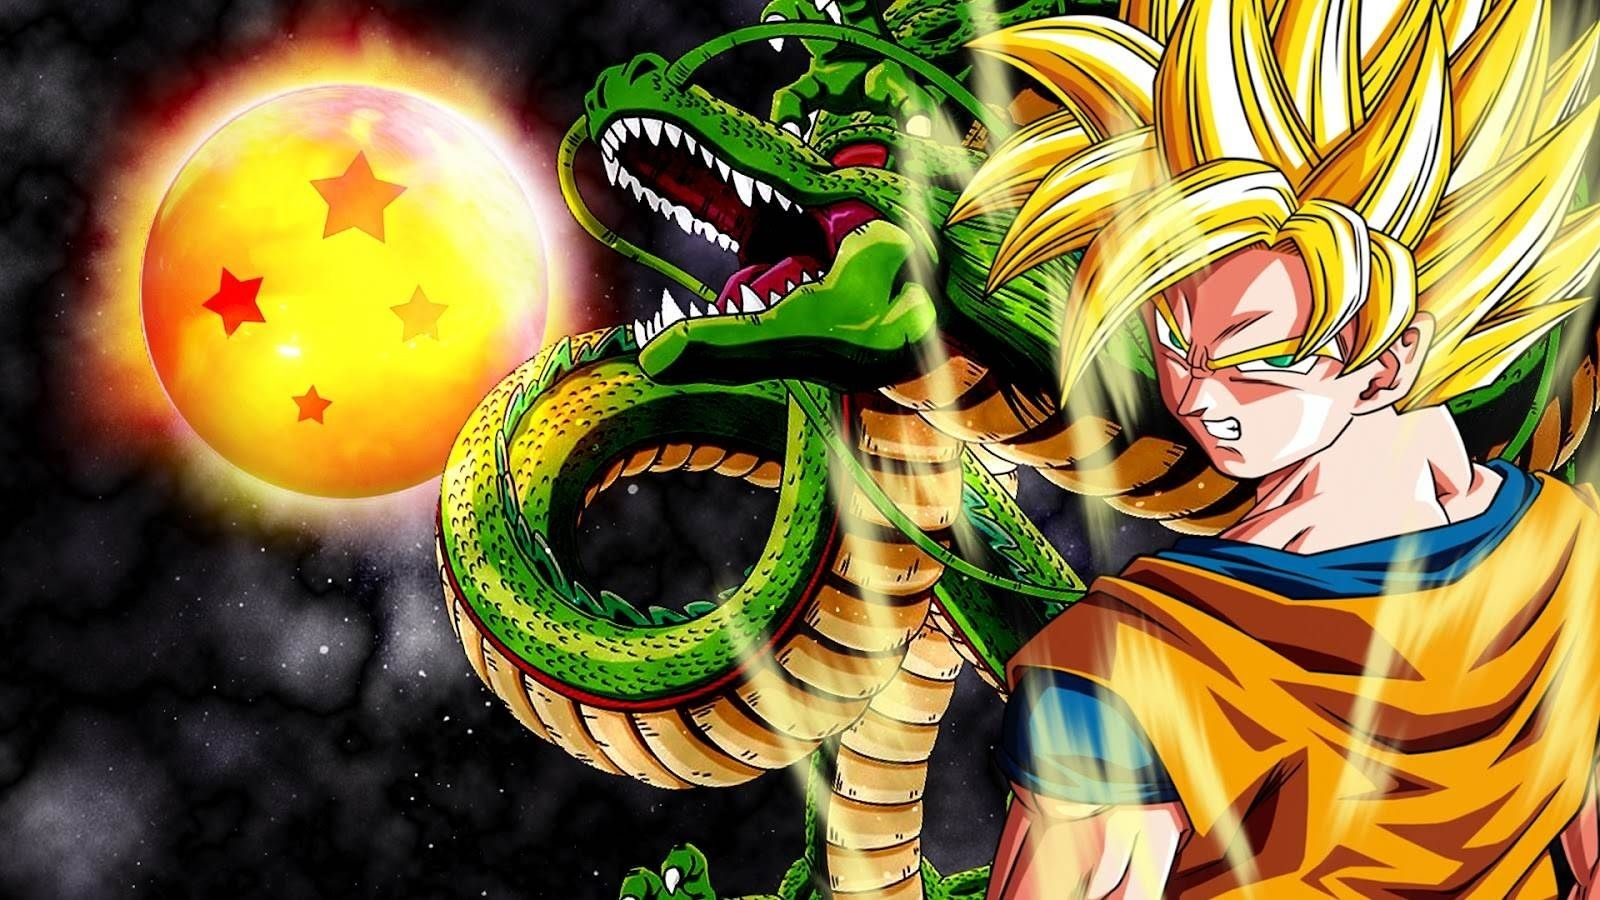 goku super saiyan wallpaper. 1920×1080 goku super saiyan 4 hd